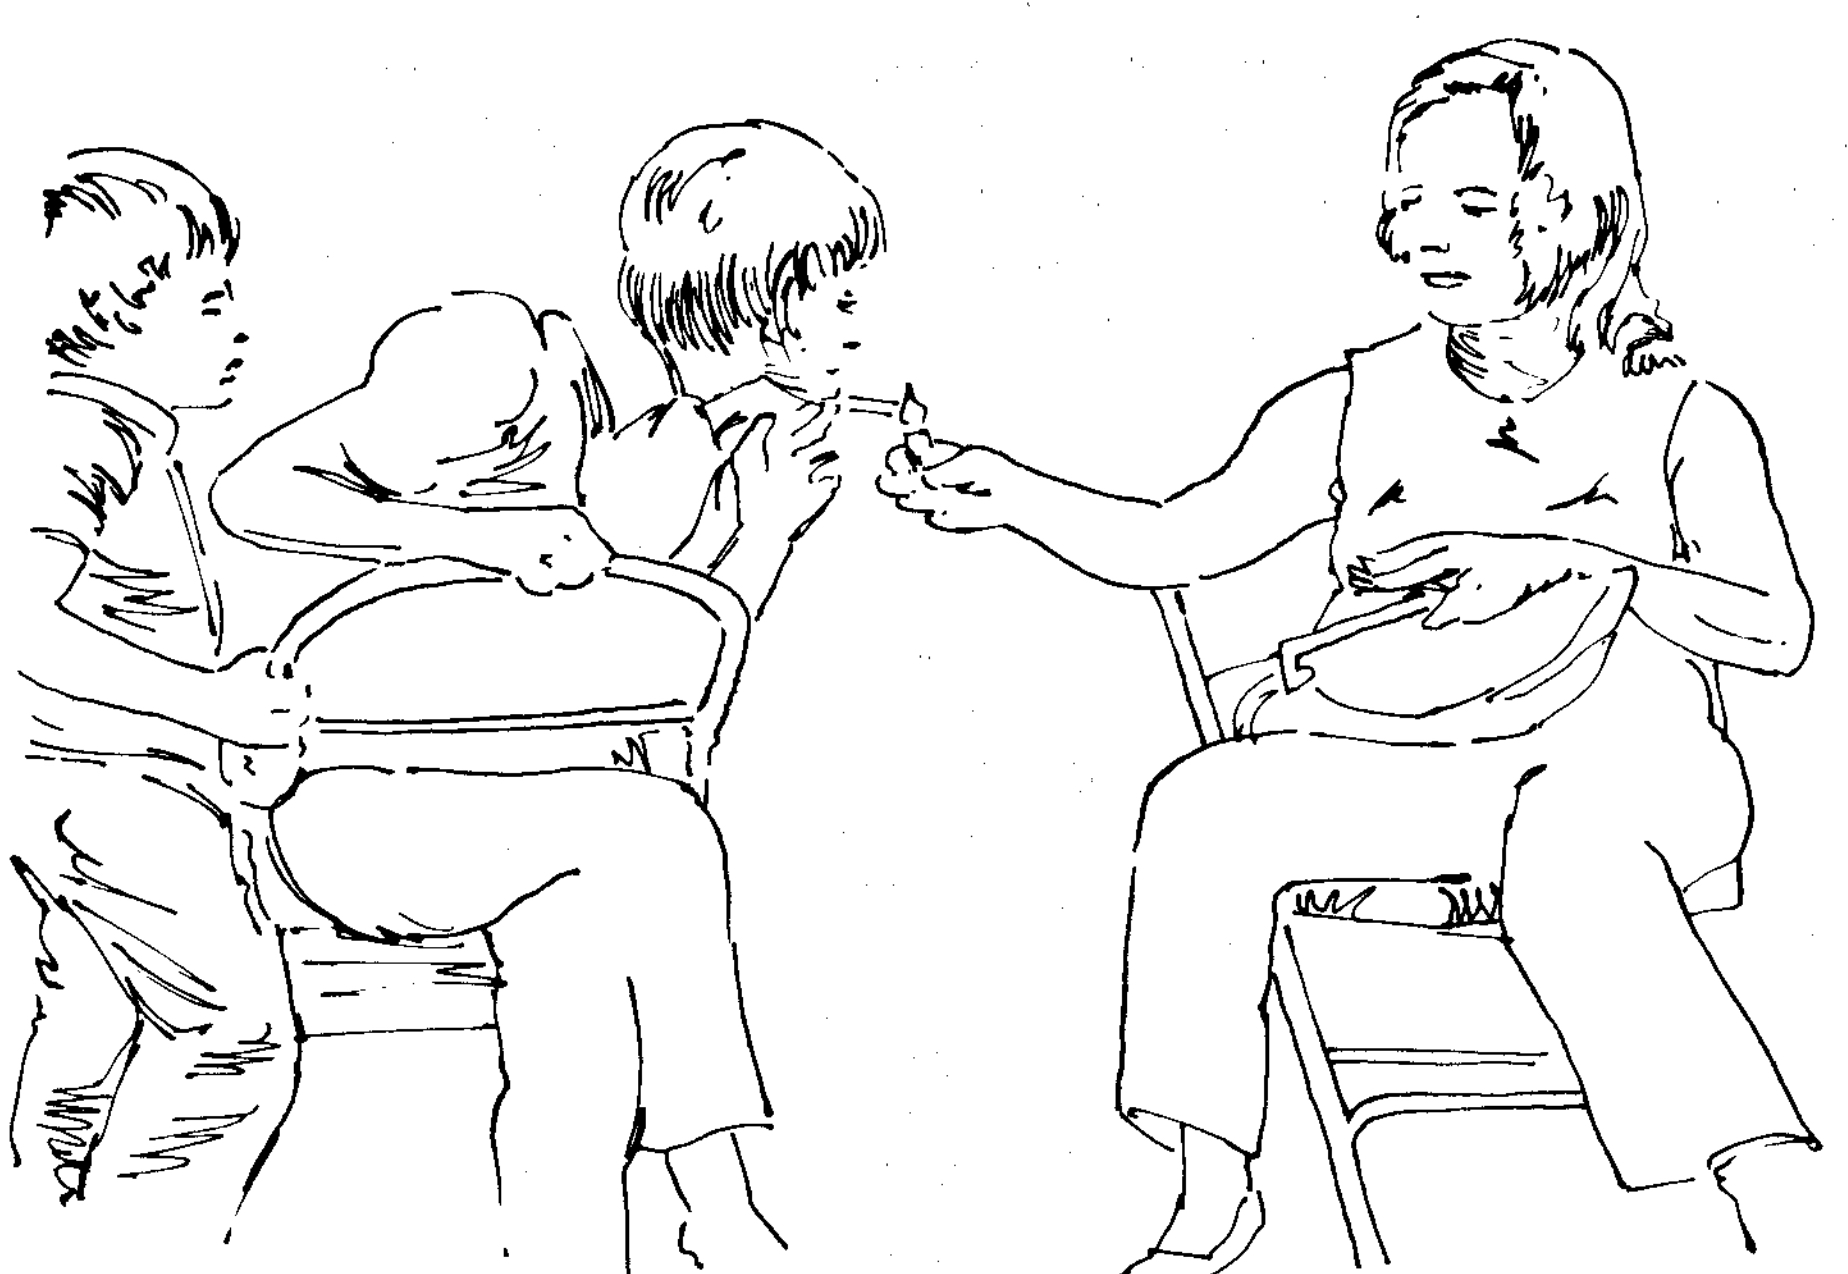 Example 7. An early use of line drawings used with transcription; from Goodwin 1981:147